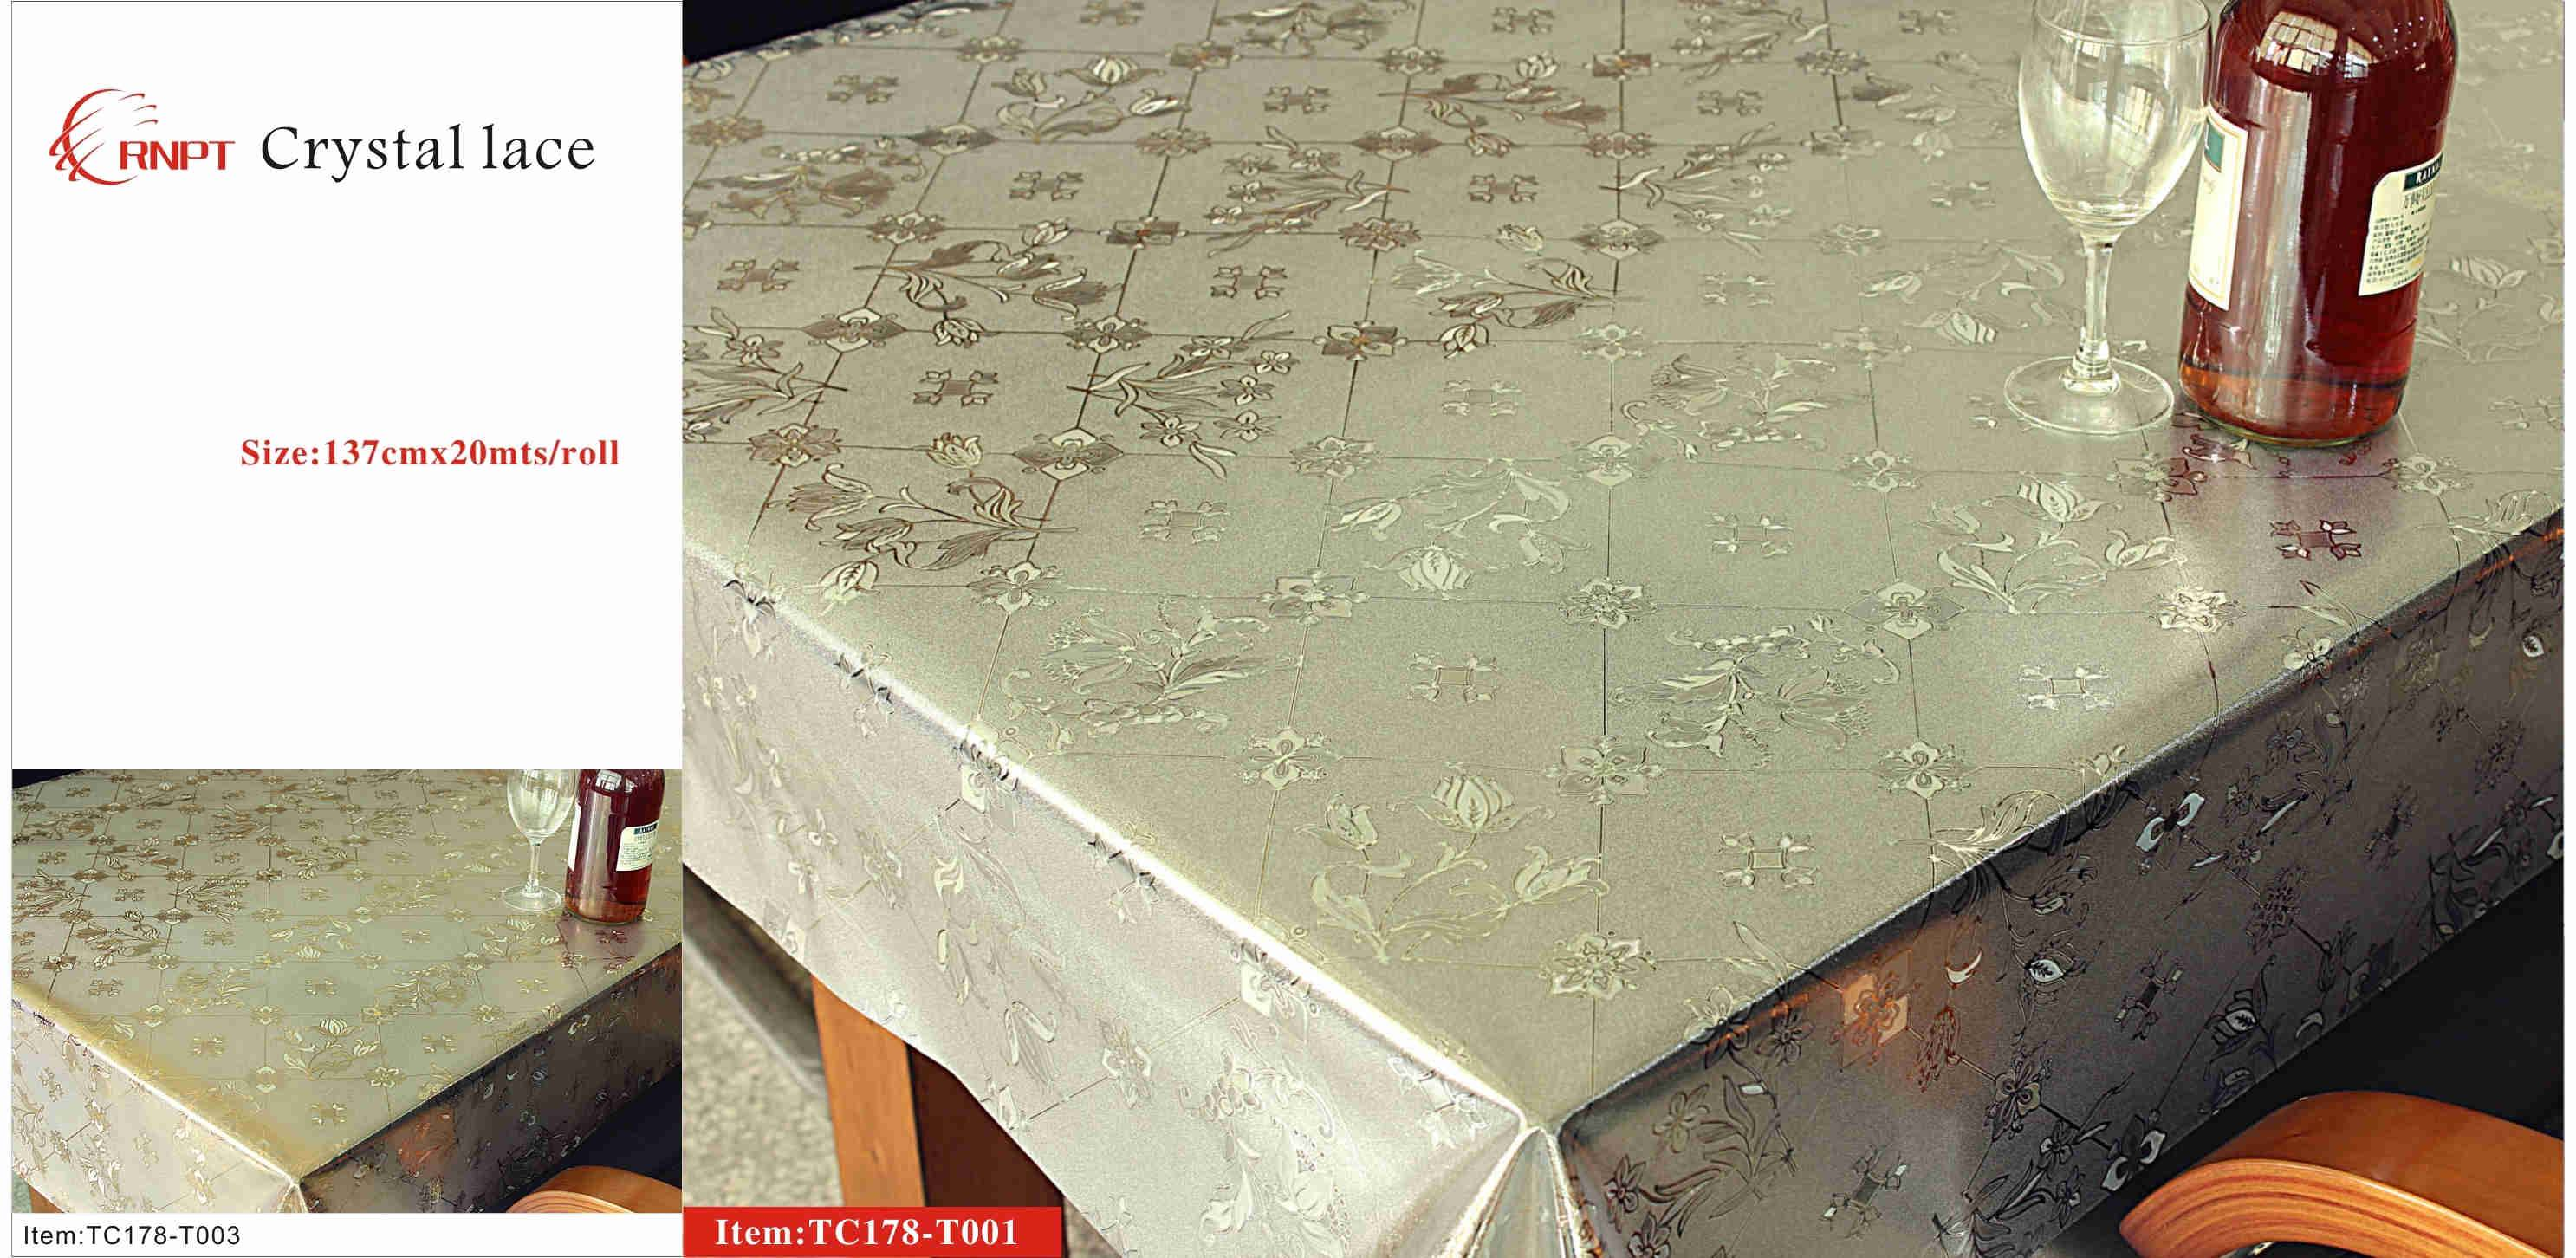 pvc tabe cover lace